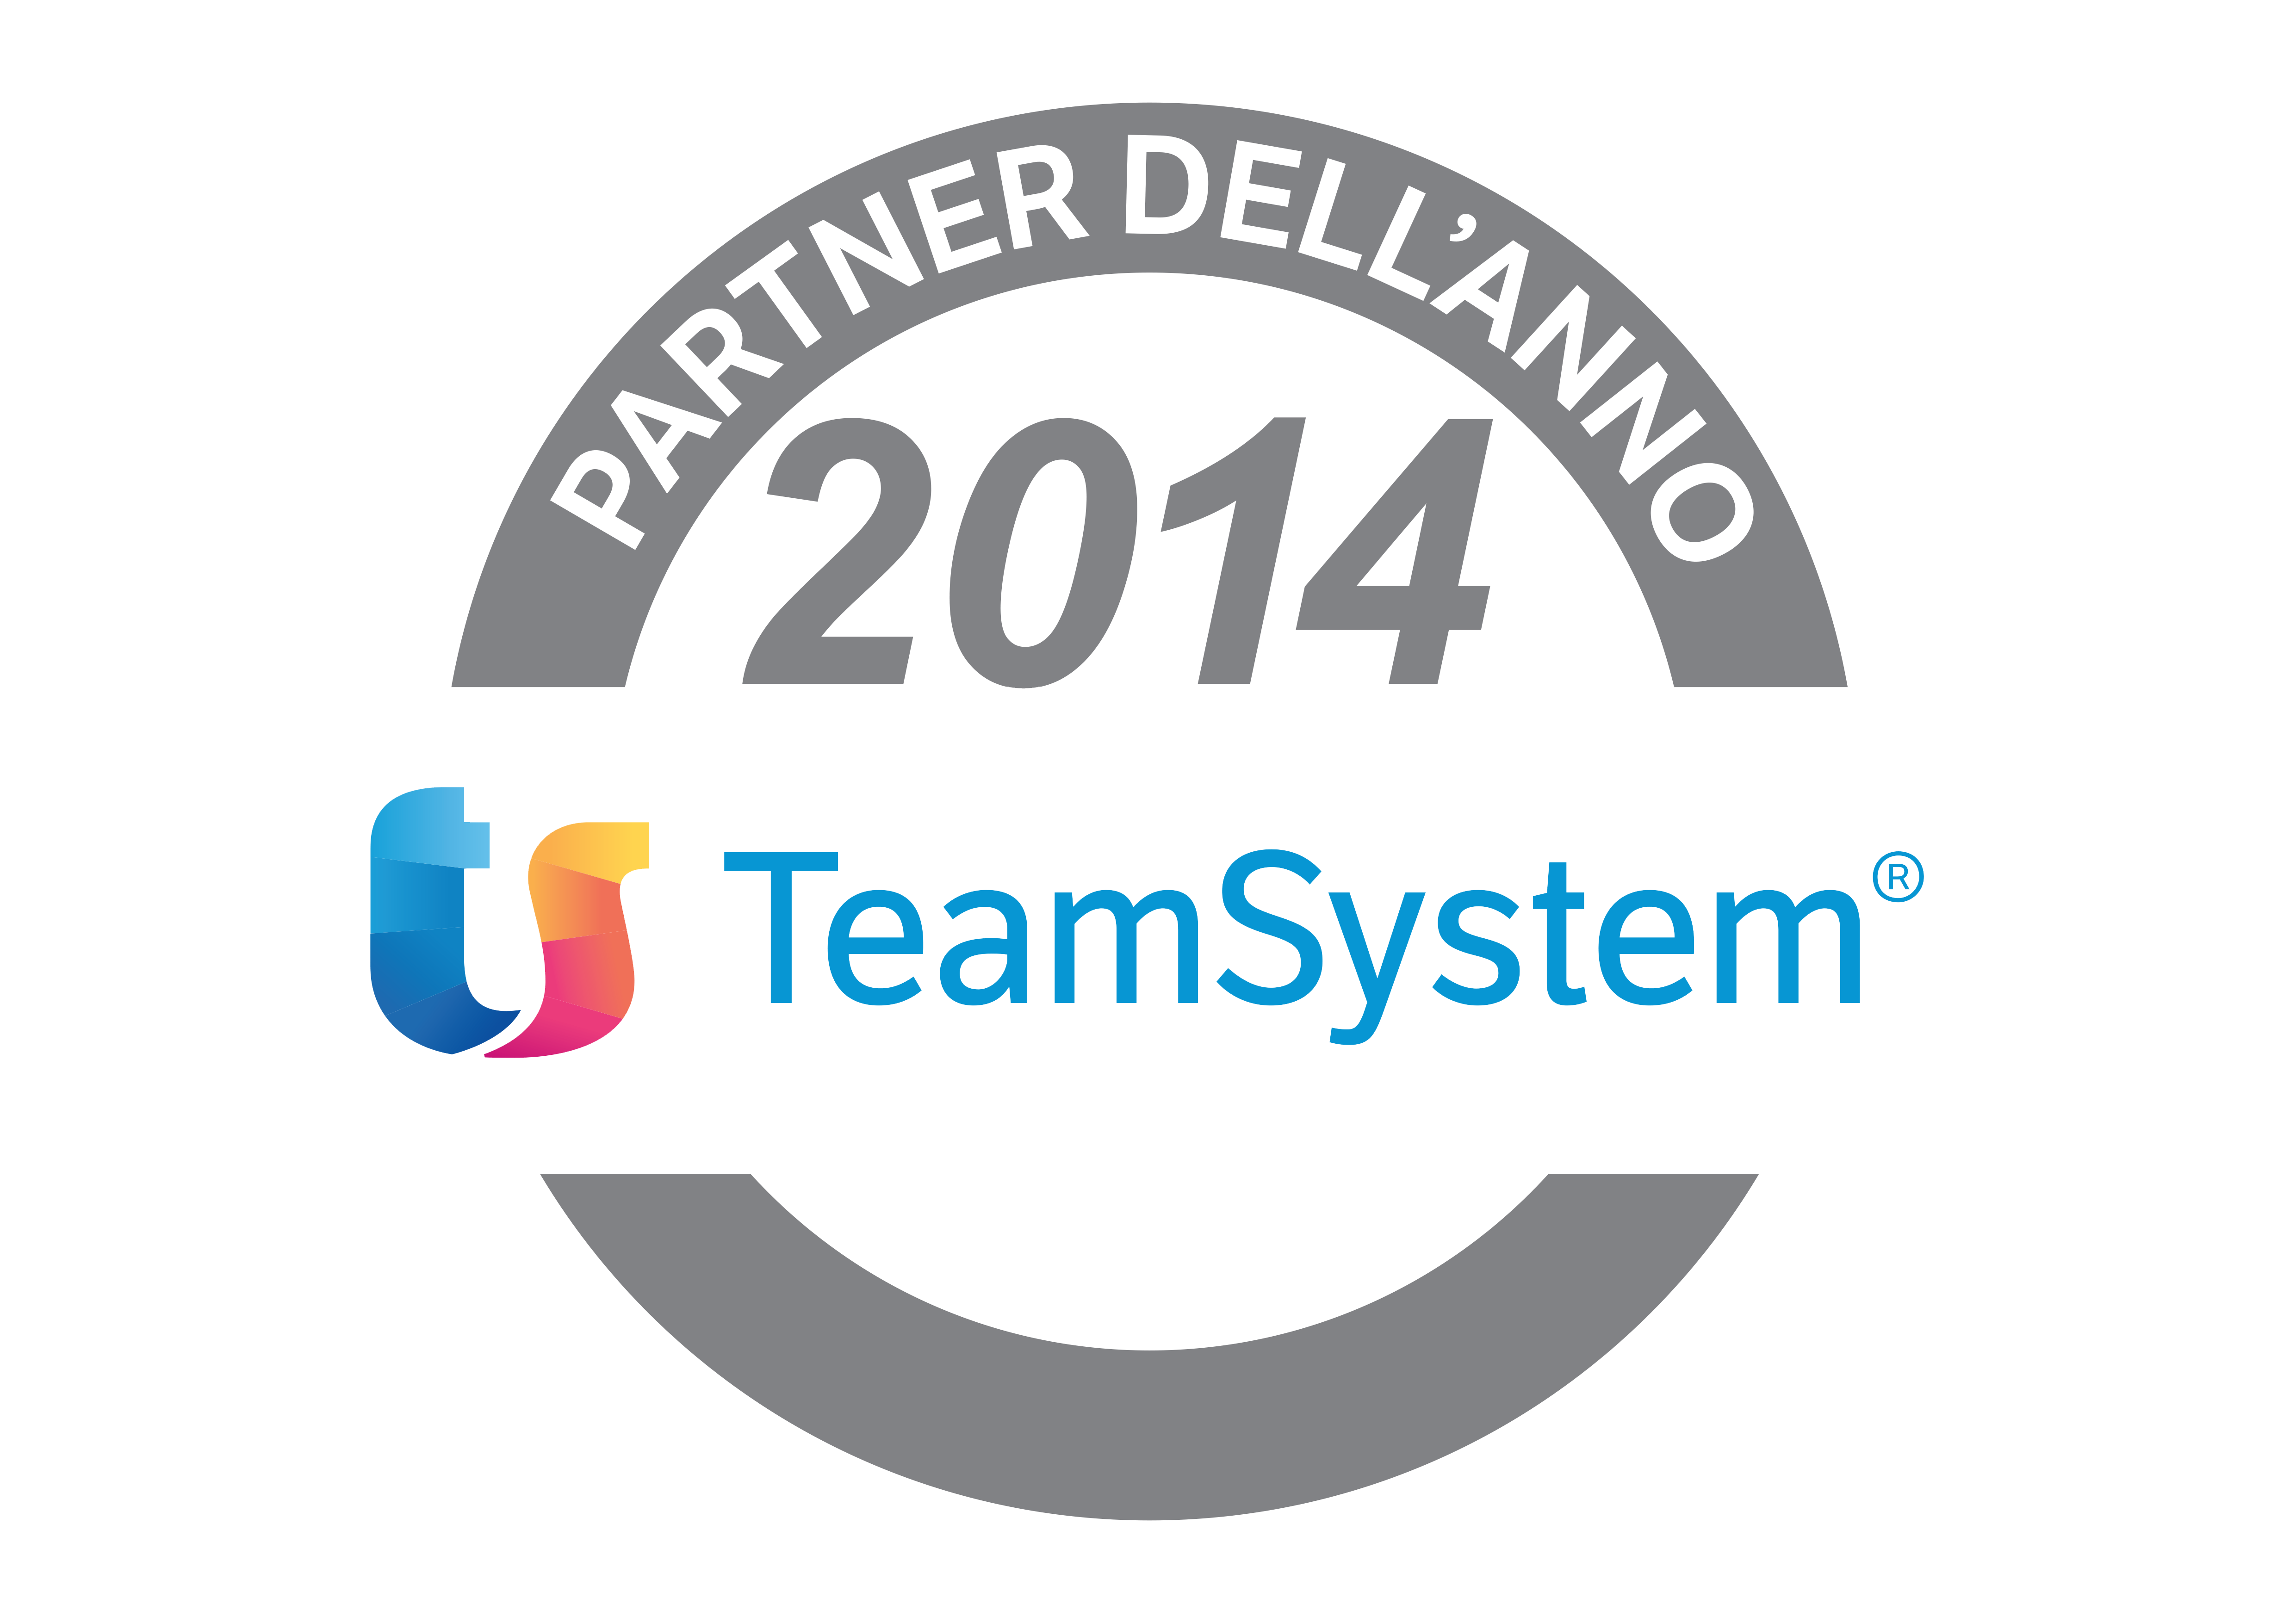 Best Partner 2014 TeamSystem